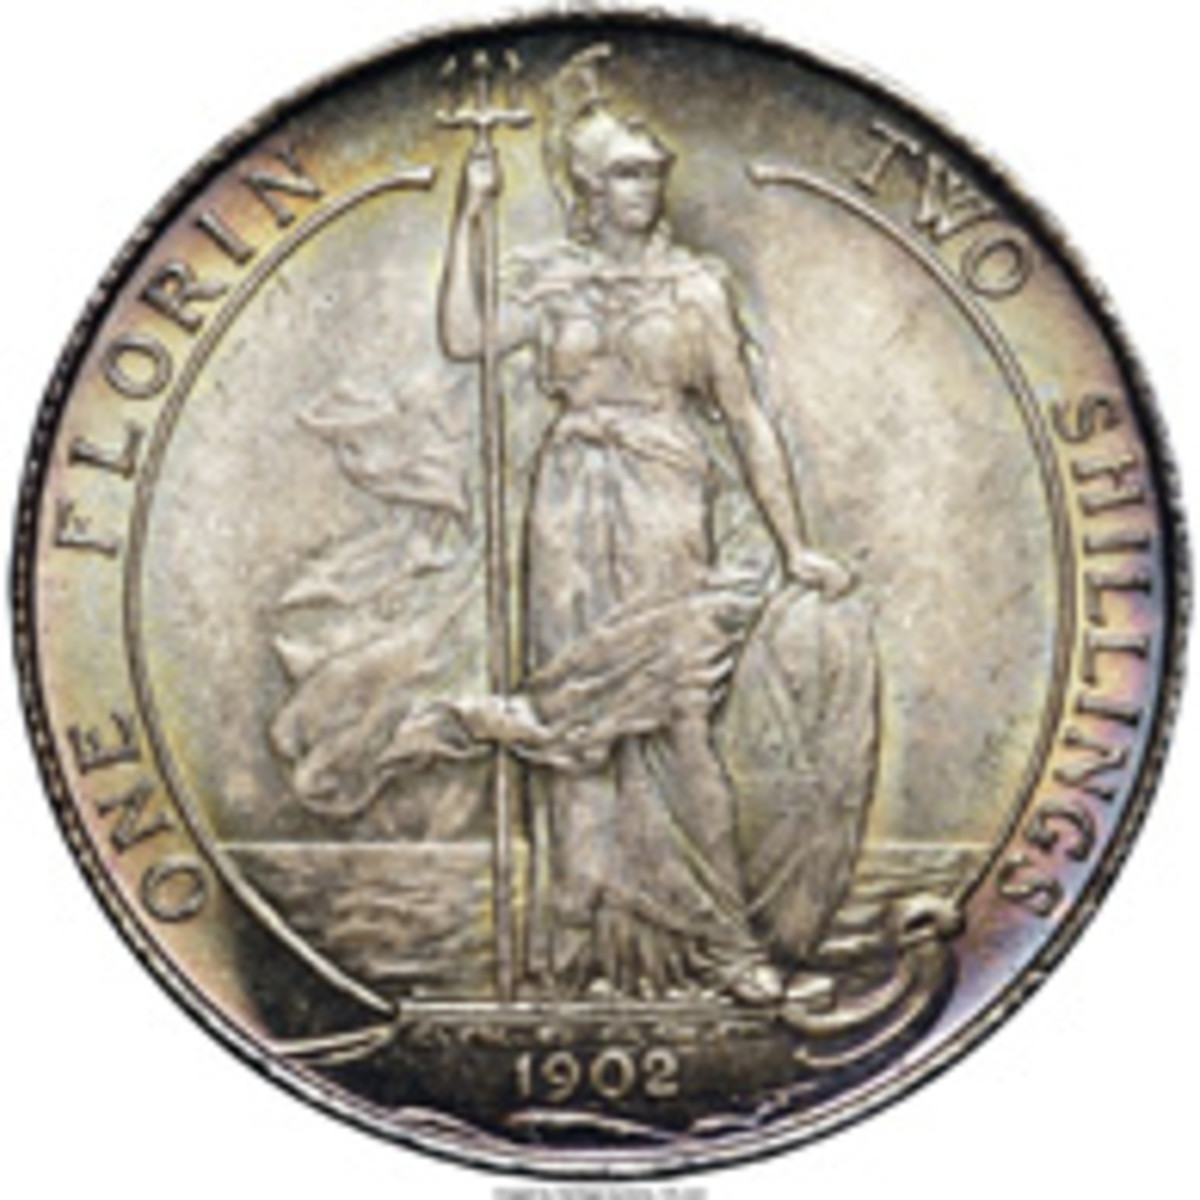 De Saulle's innovative Standing Britannia design for the reverse of the silver florins of Edward VII, KM-801, S-3981. (Image www.ha.com)